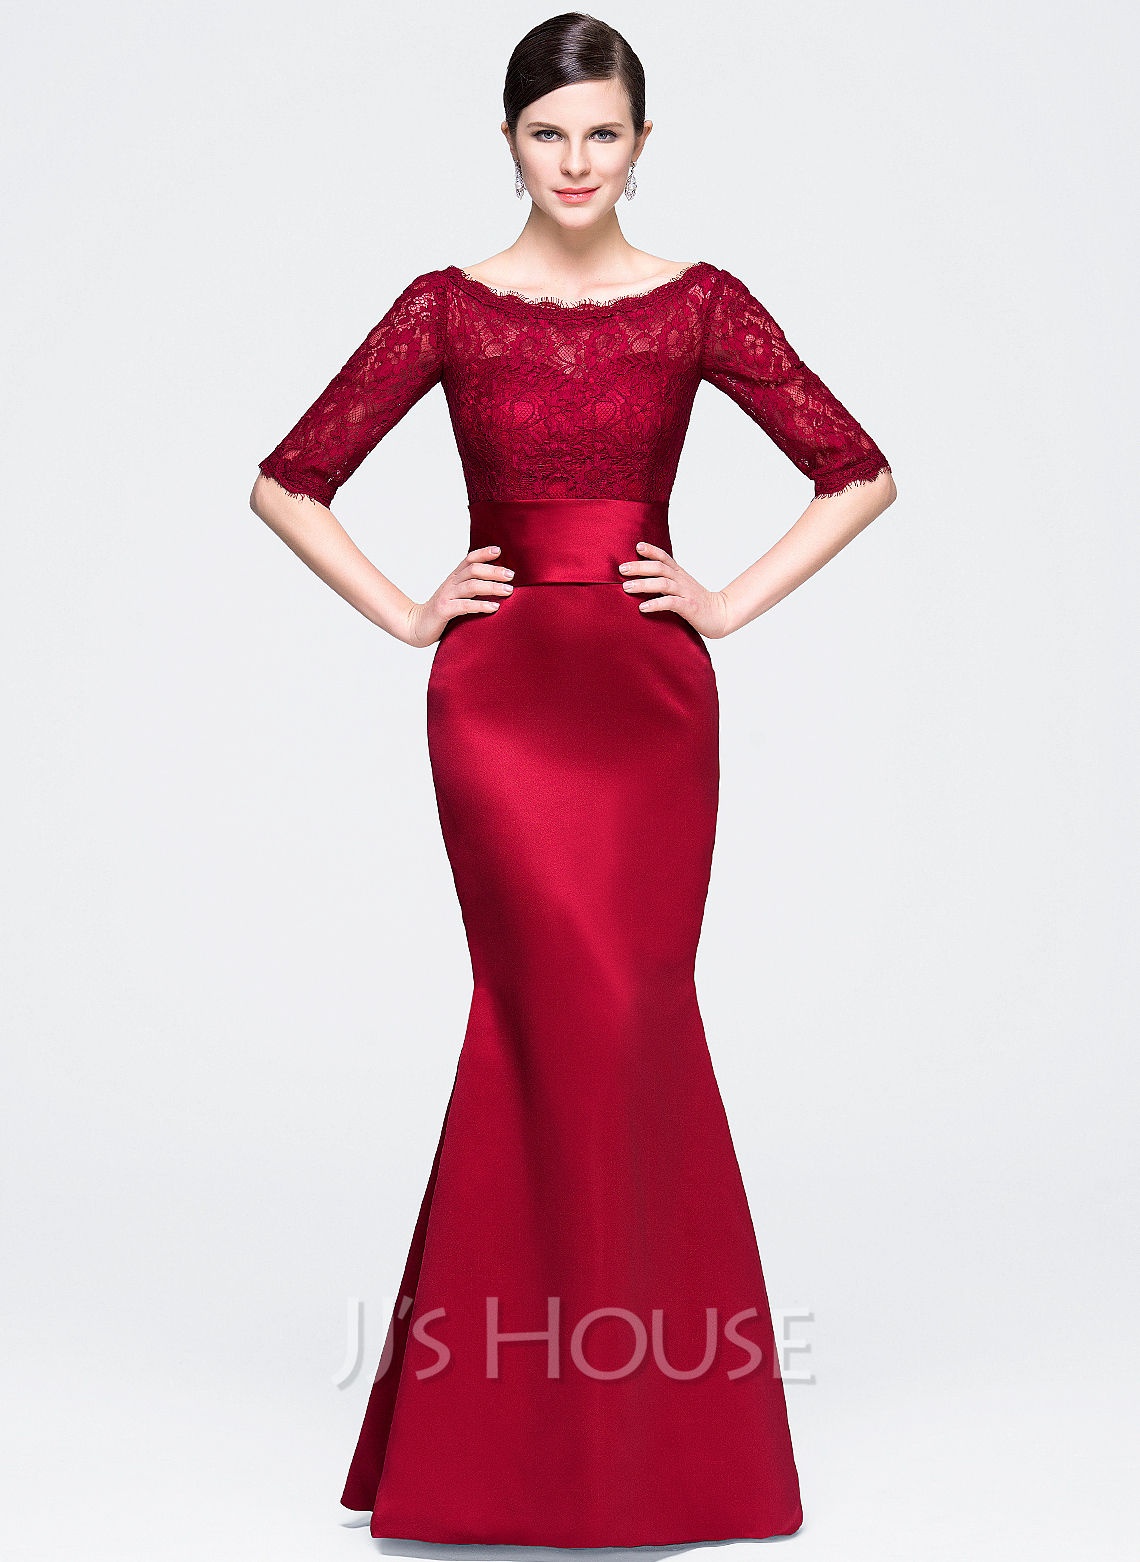 8ec1d73d3475 Trumpet/Mermaid Scoop Neck Floor-Length Satin Lace Evening Dress. Loading  zoom